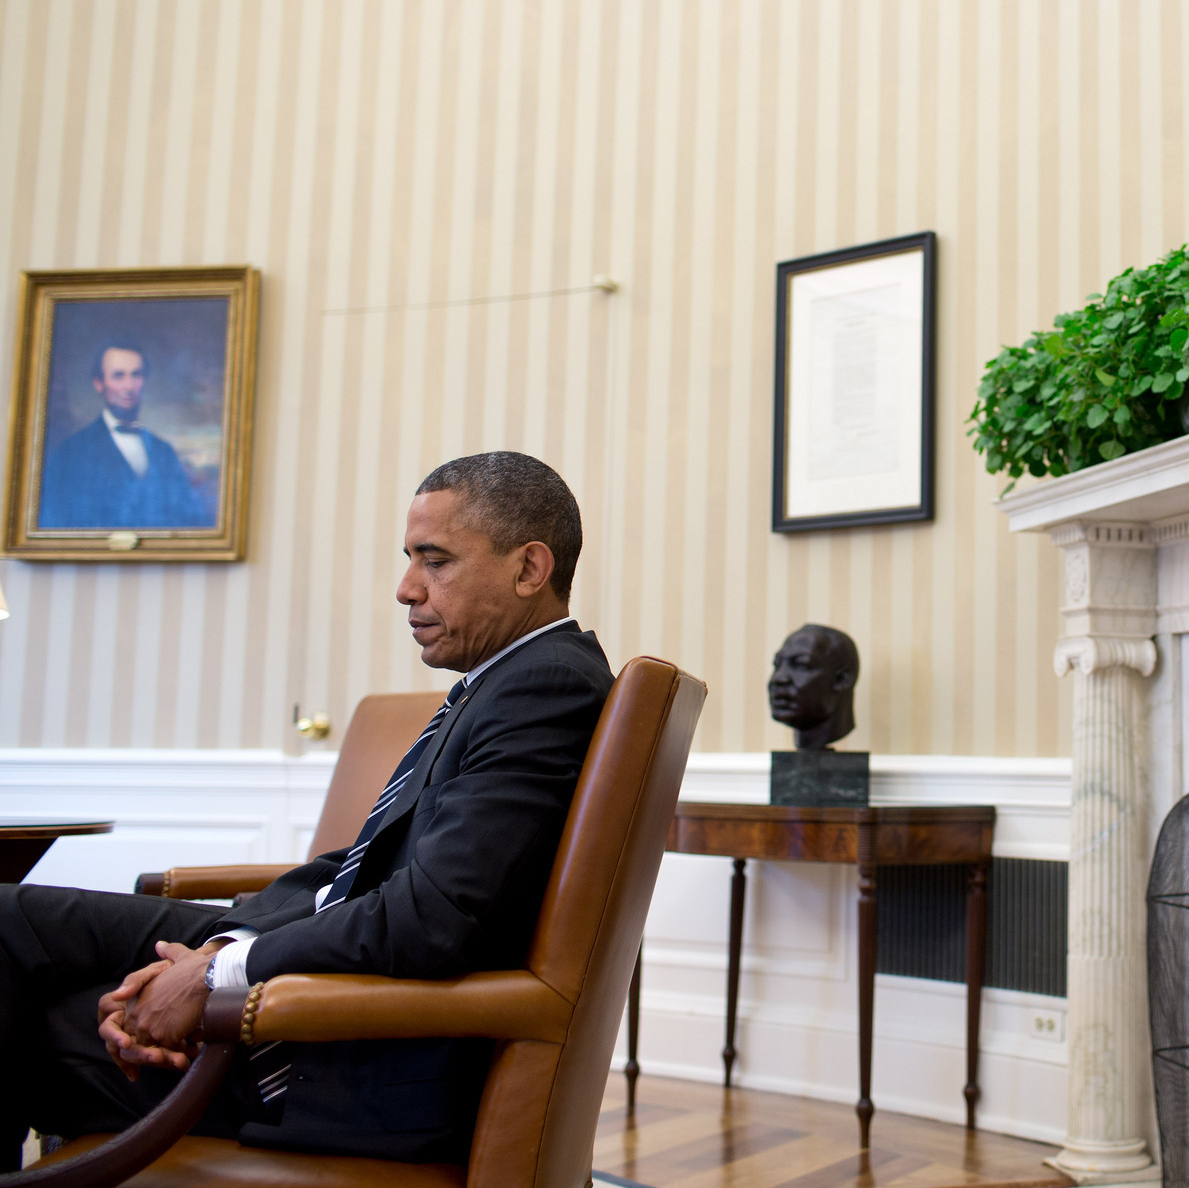 President Obama is seen during a September meeting at the White House, juxtaposed with the paintings of Abraham Lincoln and George Washington, busts of Martin Luther King Jr. and Abraham Lincoln, and the Emancipation Proclamation.